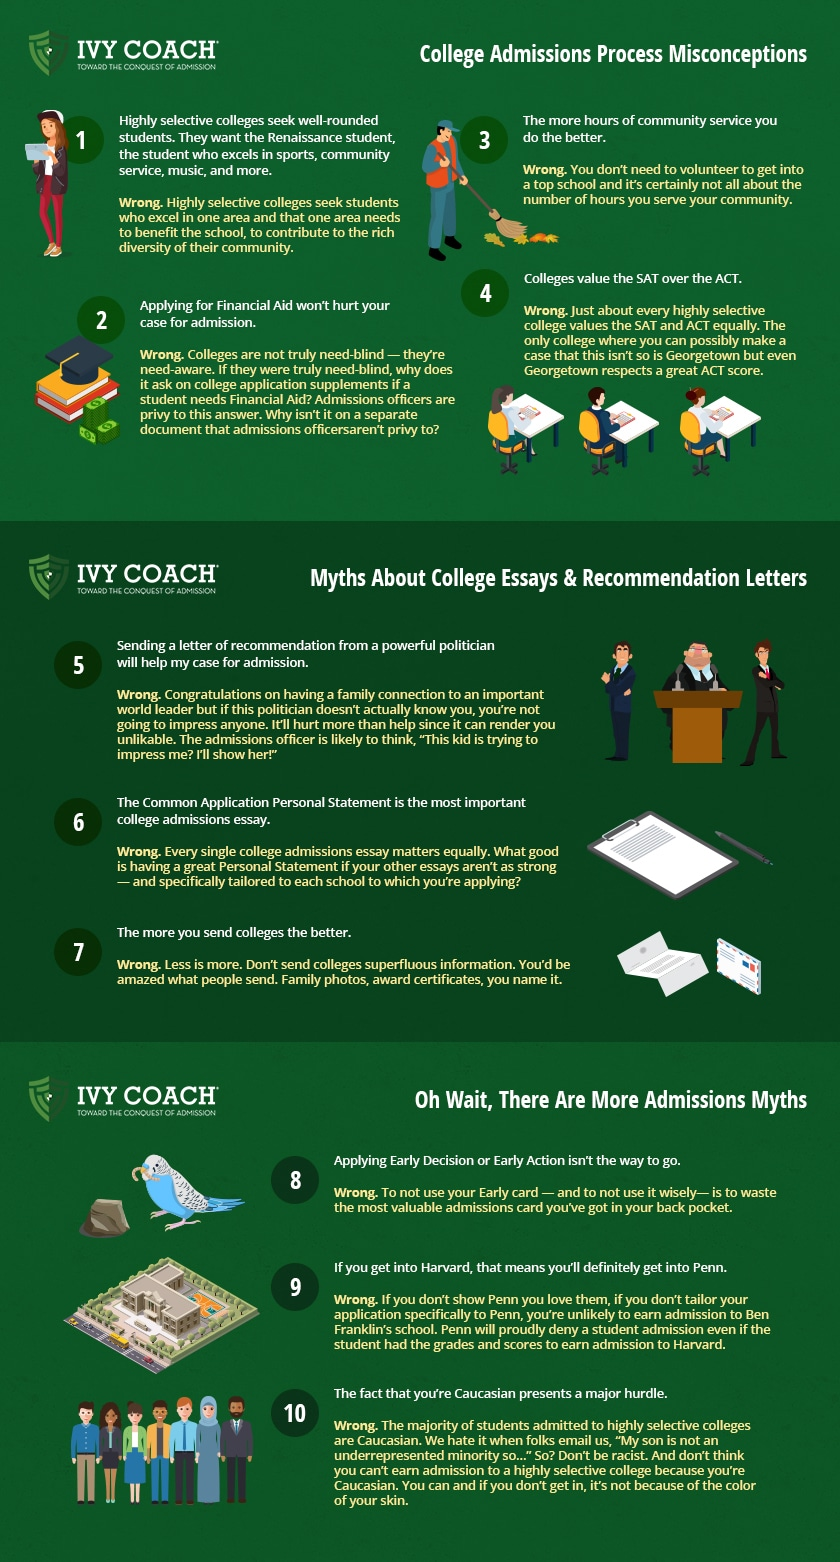 College Admissions Myths, Myths of College Admissions, Admissions Misconceptions